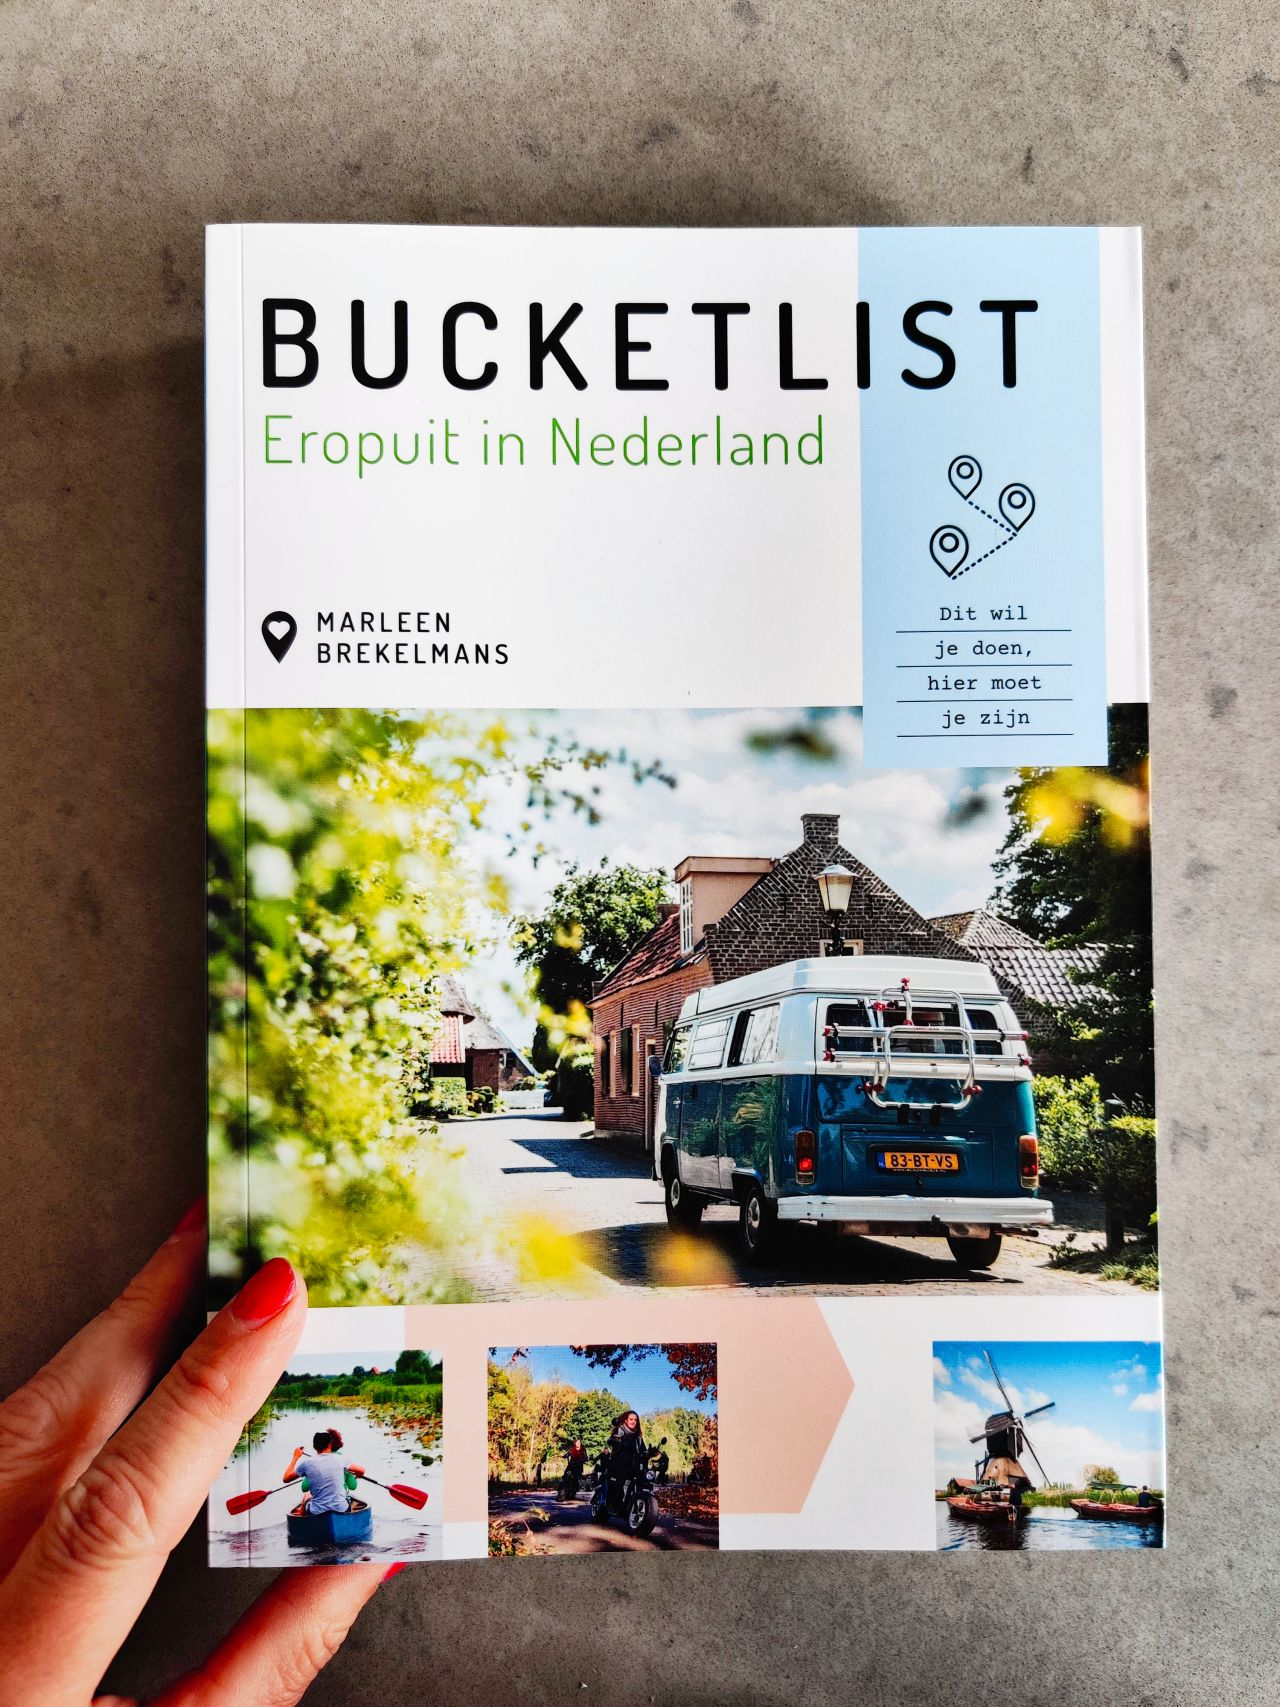 Bucketlist Eropuit in Nederland Soetkees 6